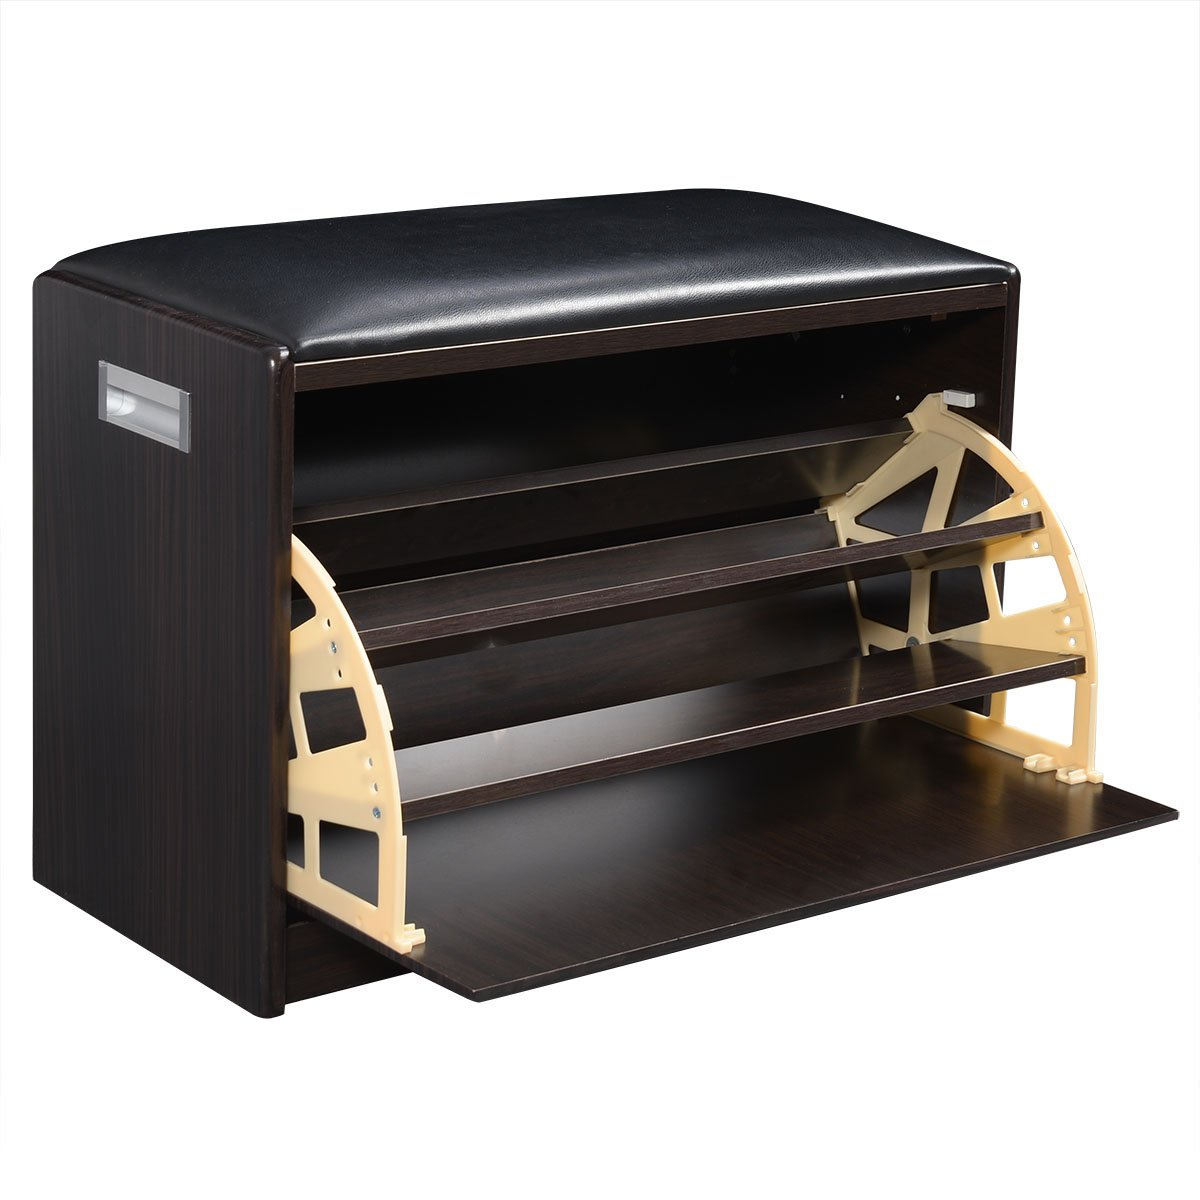 Gentil Amazon.com: Giantex Wood Shoe Storage Cabinet Bench Ottoman Closet Shelf  Entryway Pu Leather Seat: Home U0026 Kitchen